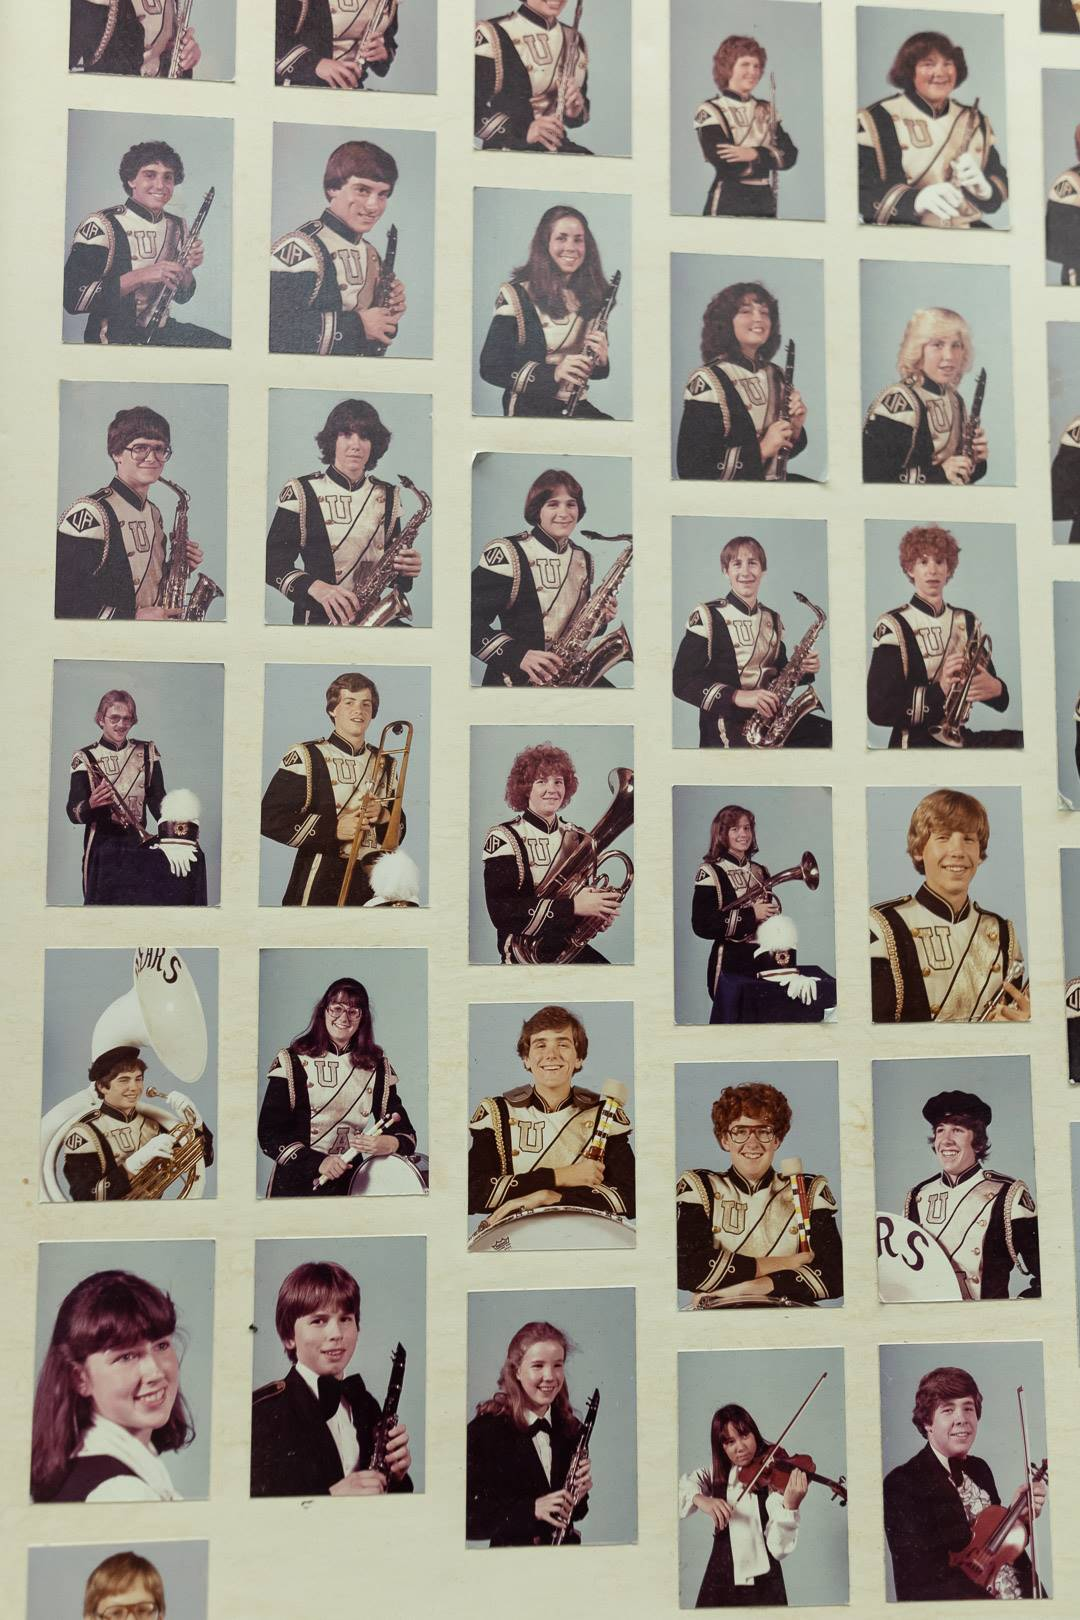 Past photos of students in the arts